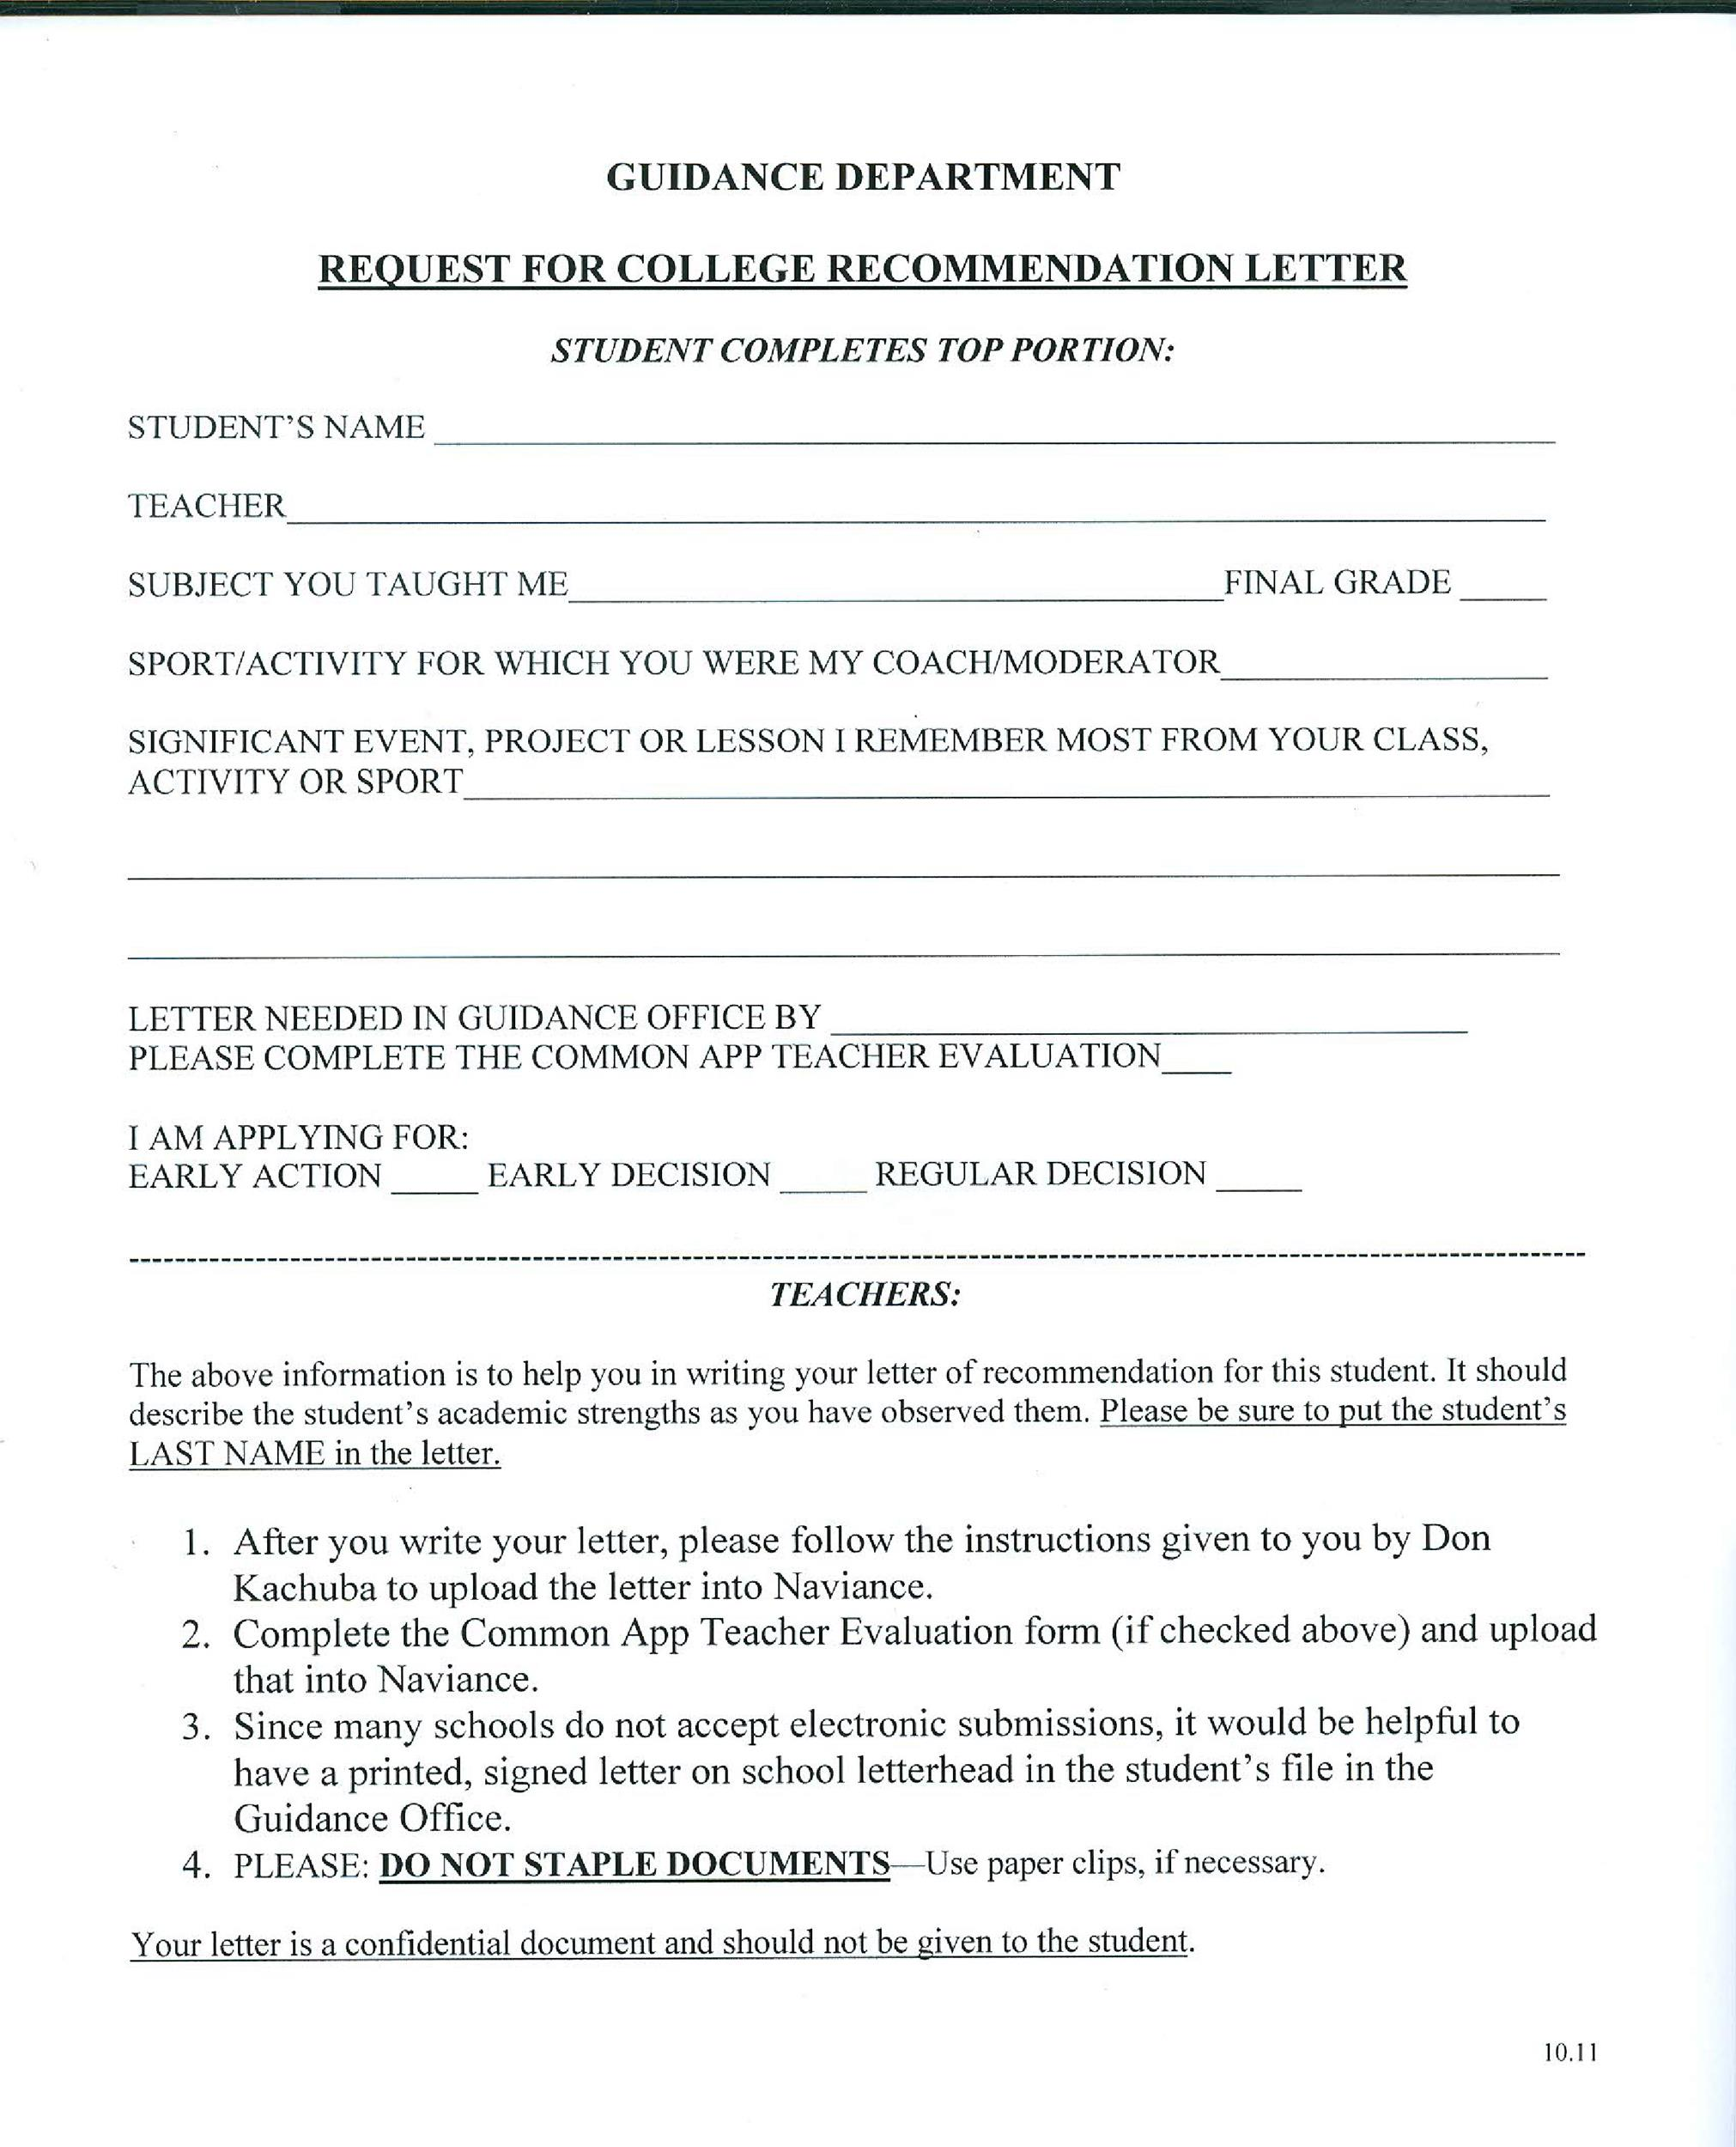 Recommendation Letter For Students Going To College Image